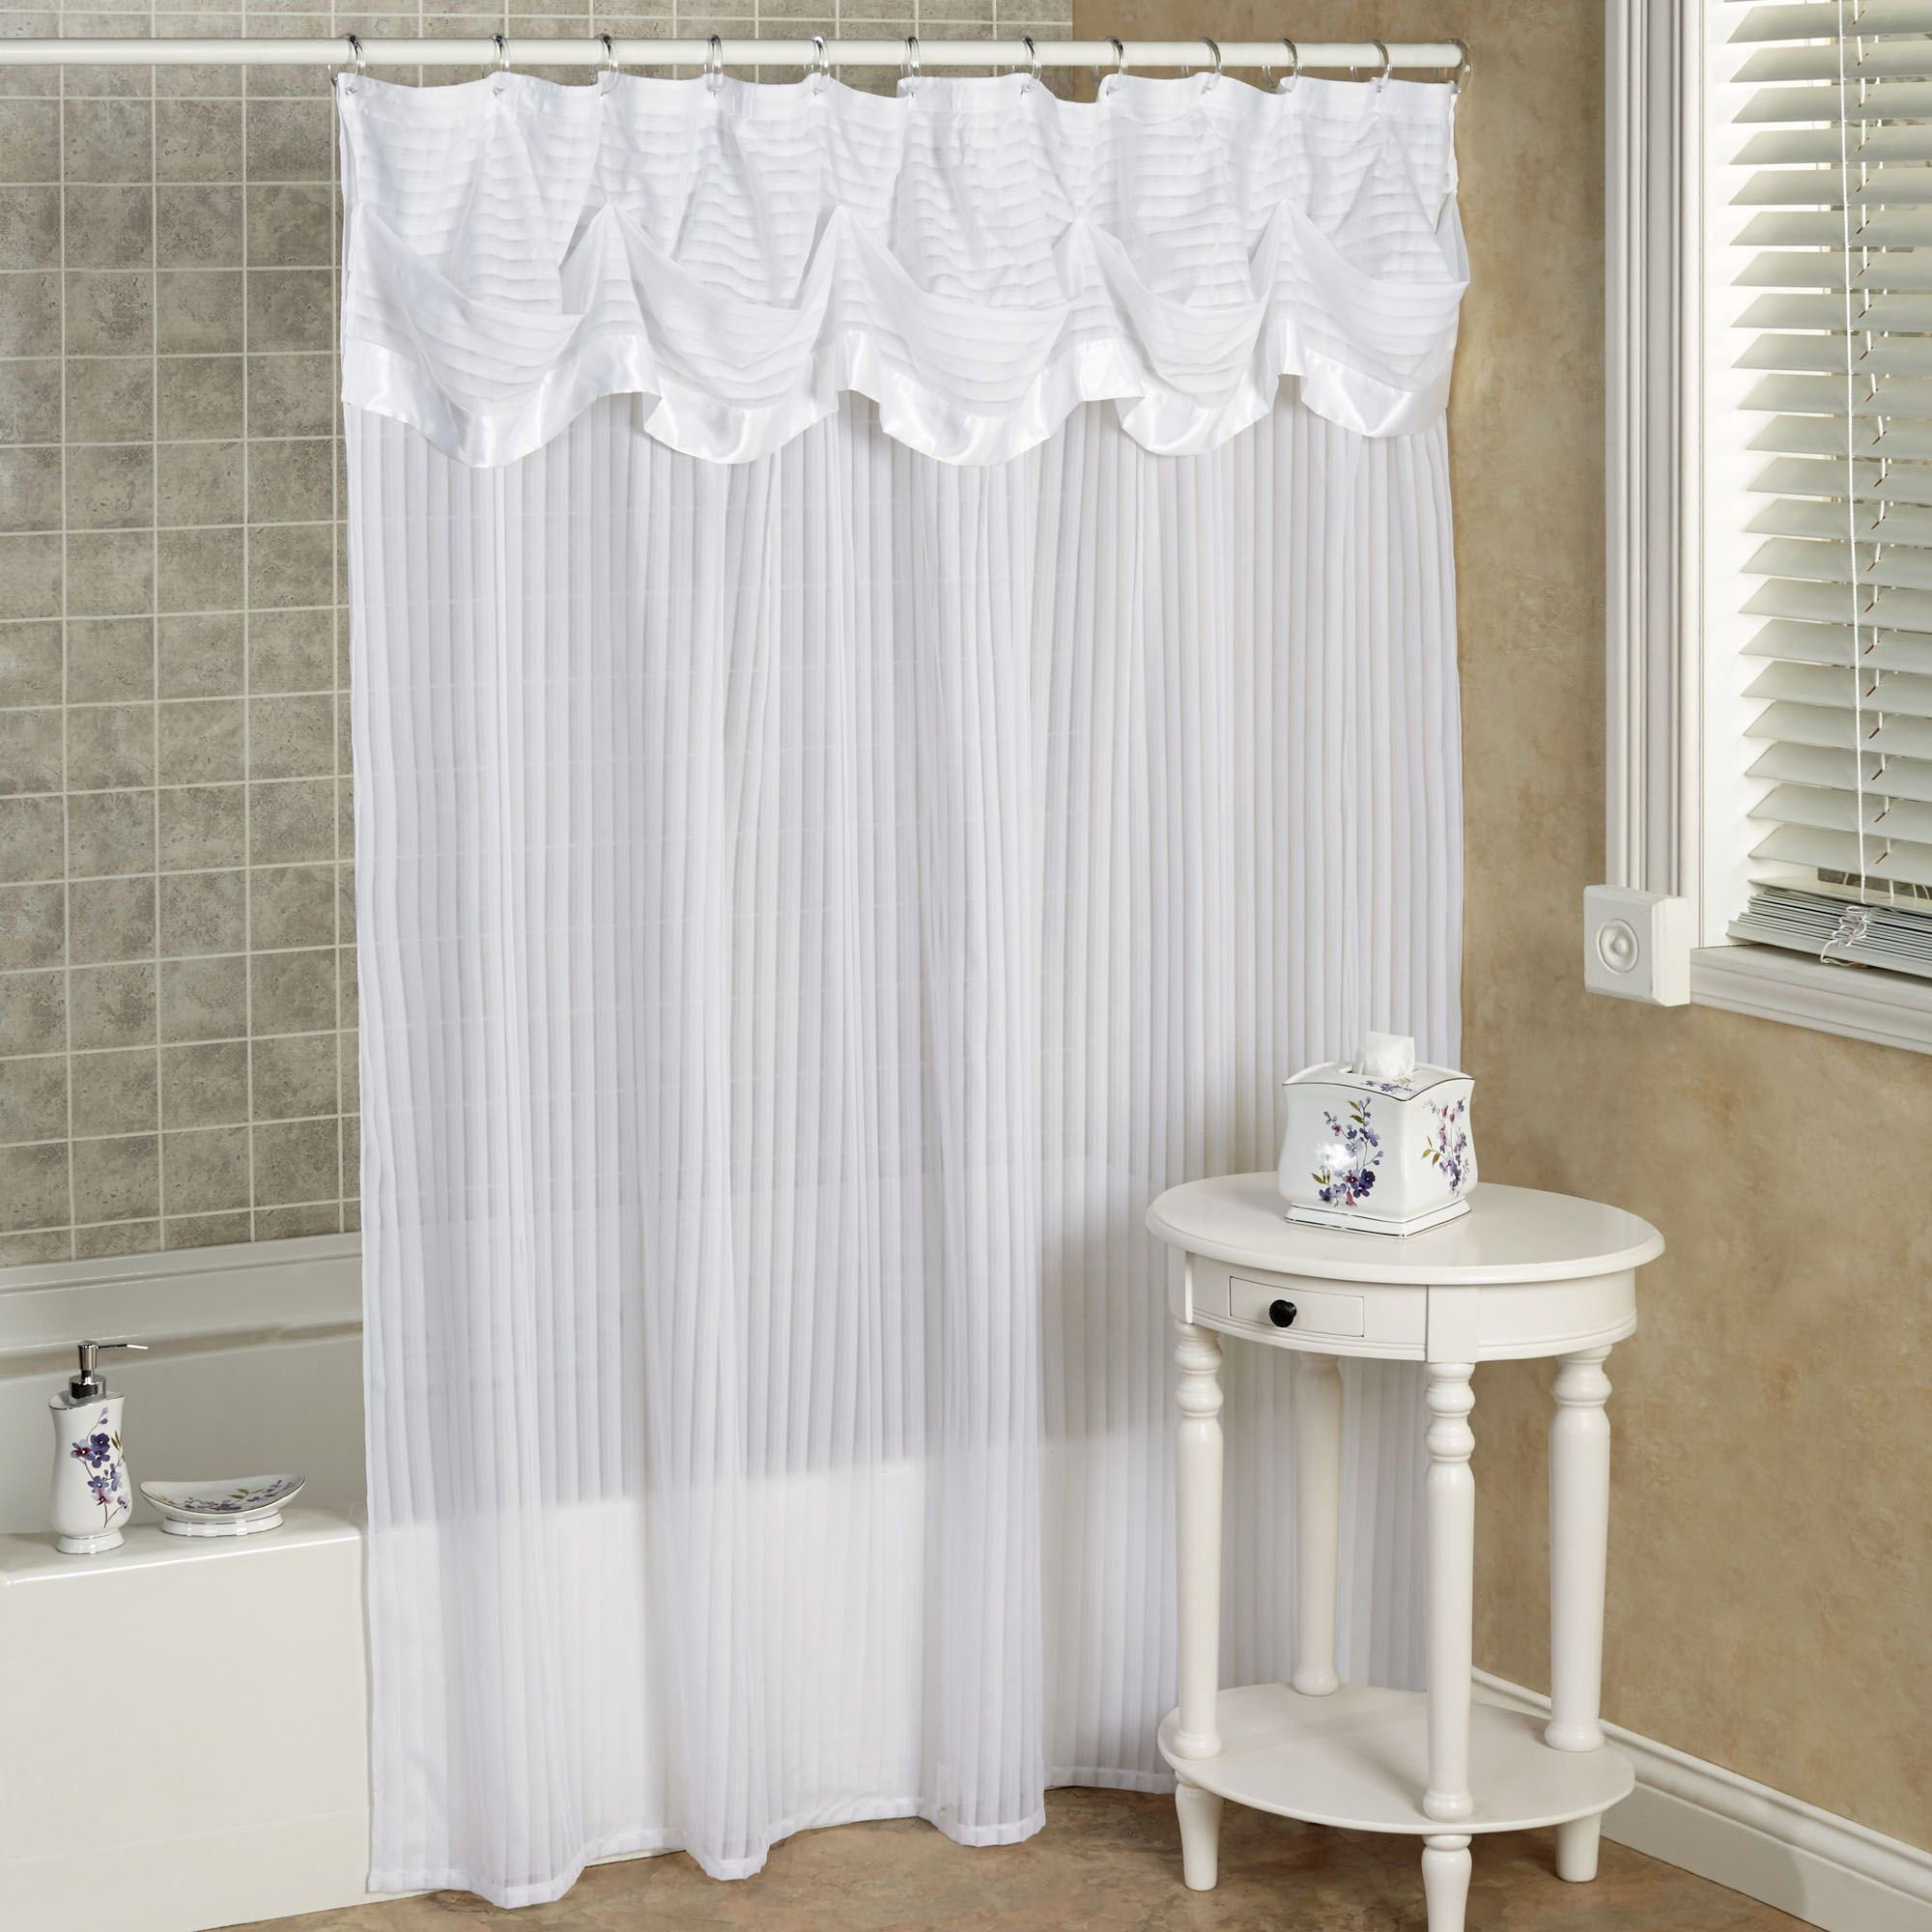 attached ideas chic curtains shower with double swag curtain exquisite and tiebacks valance